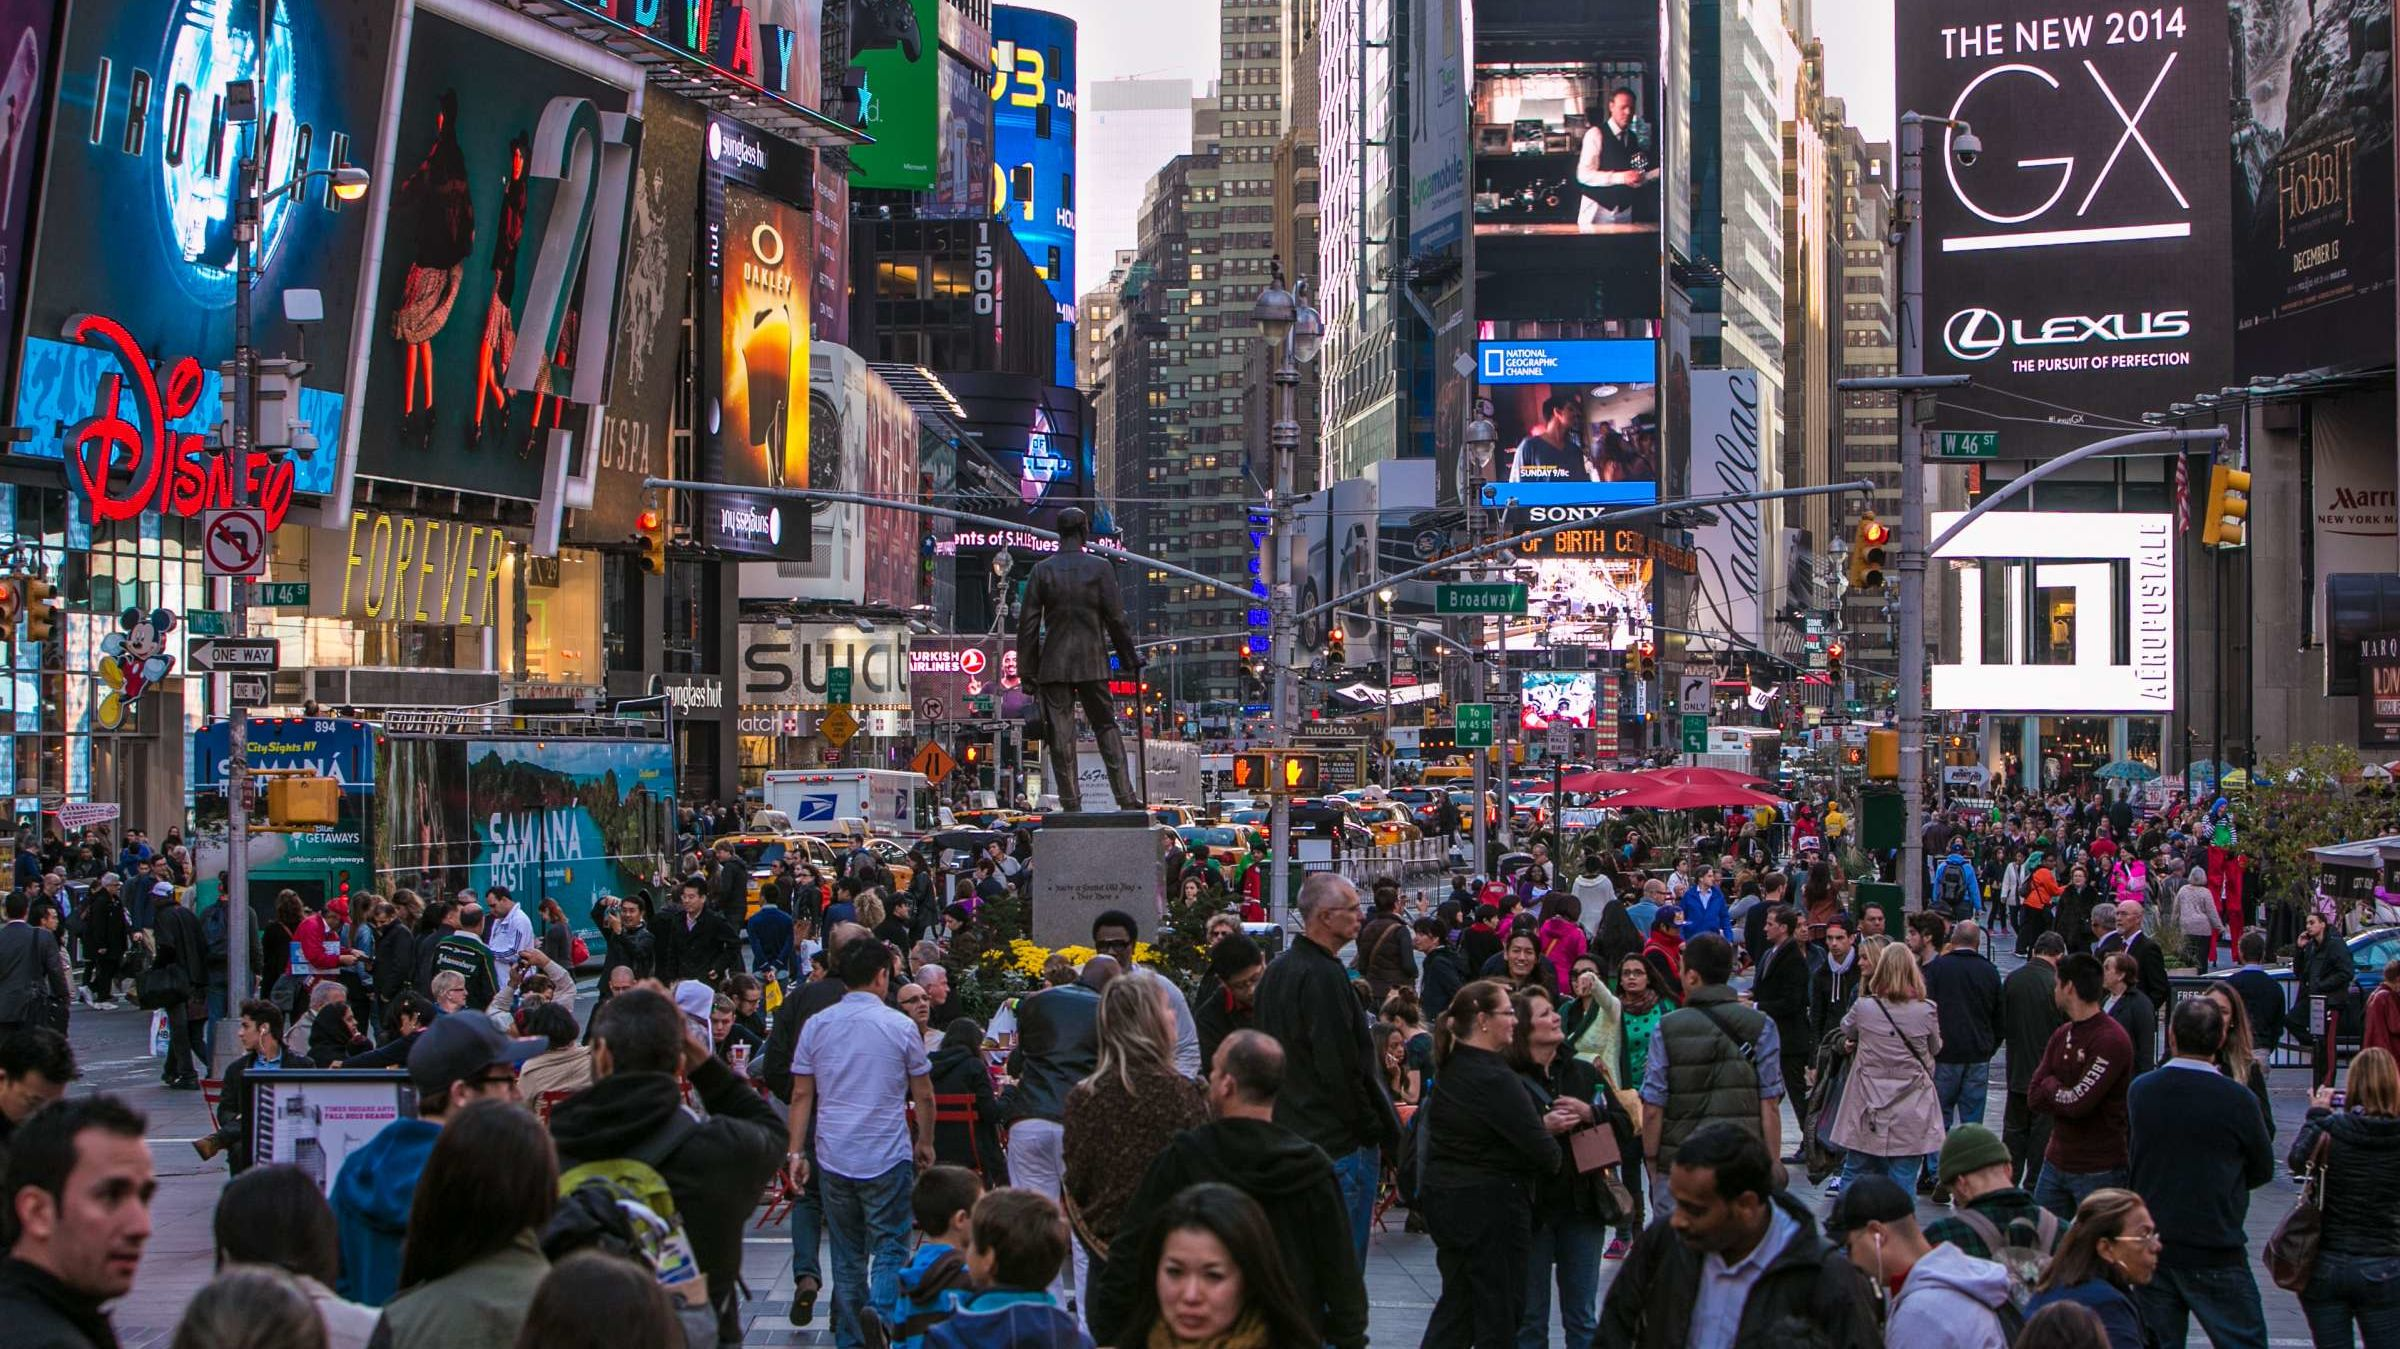 The 10 Most Crowded Cities in America—and the 10 Least Crowded